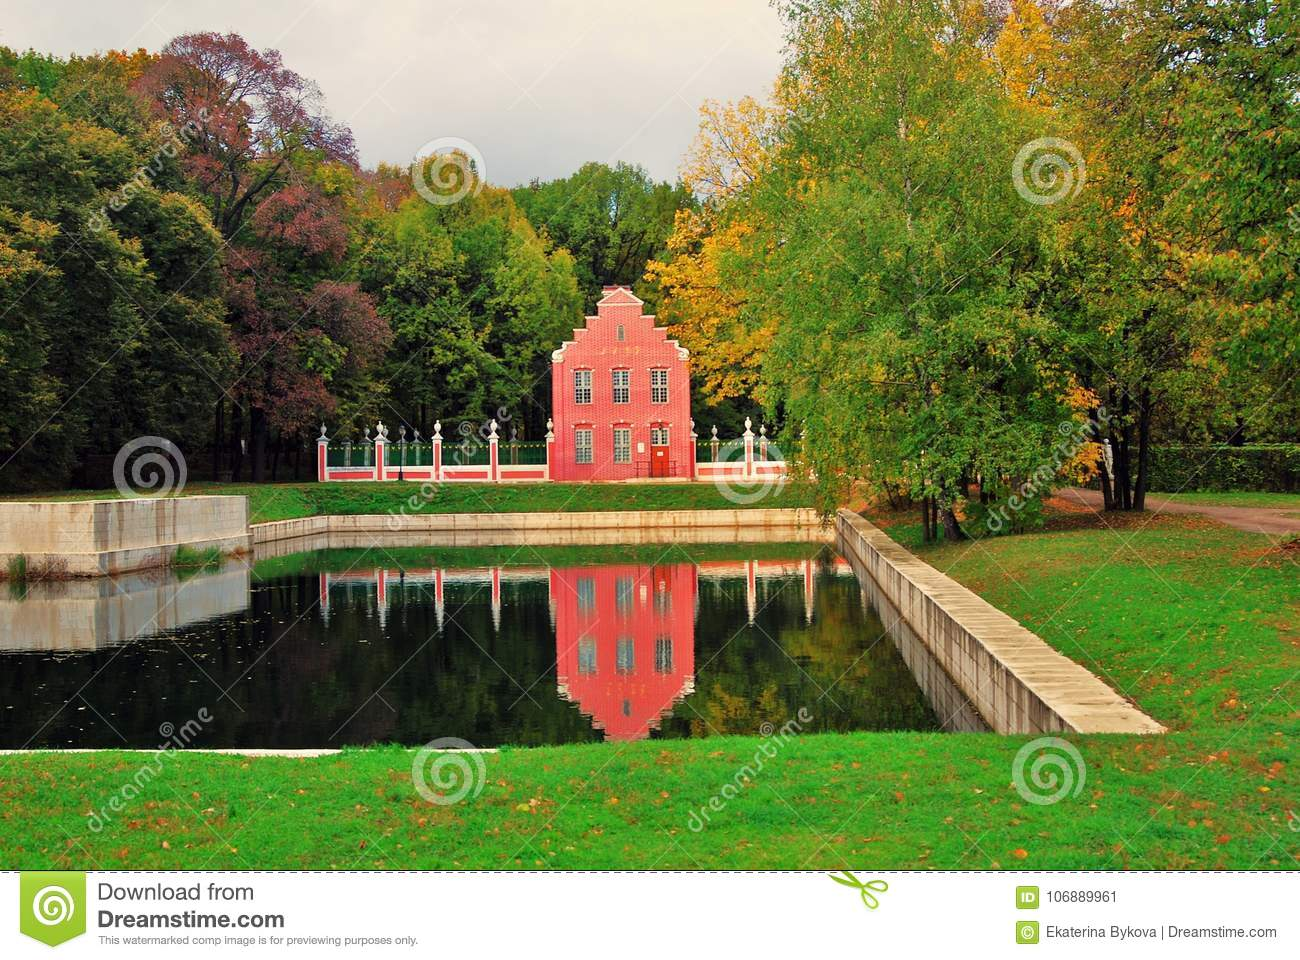 Kuskovo park in Moscow. Dutch house. Autumn nature and pond.